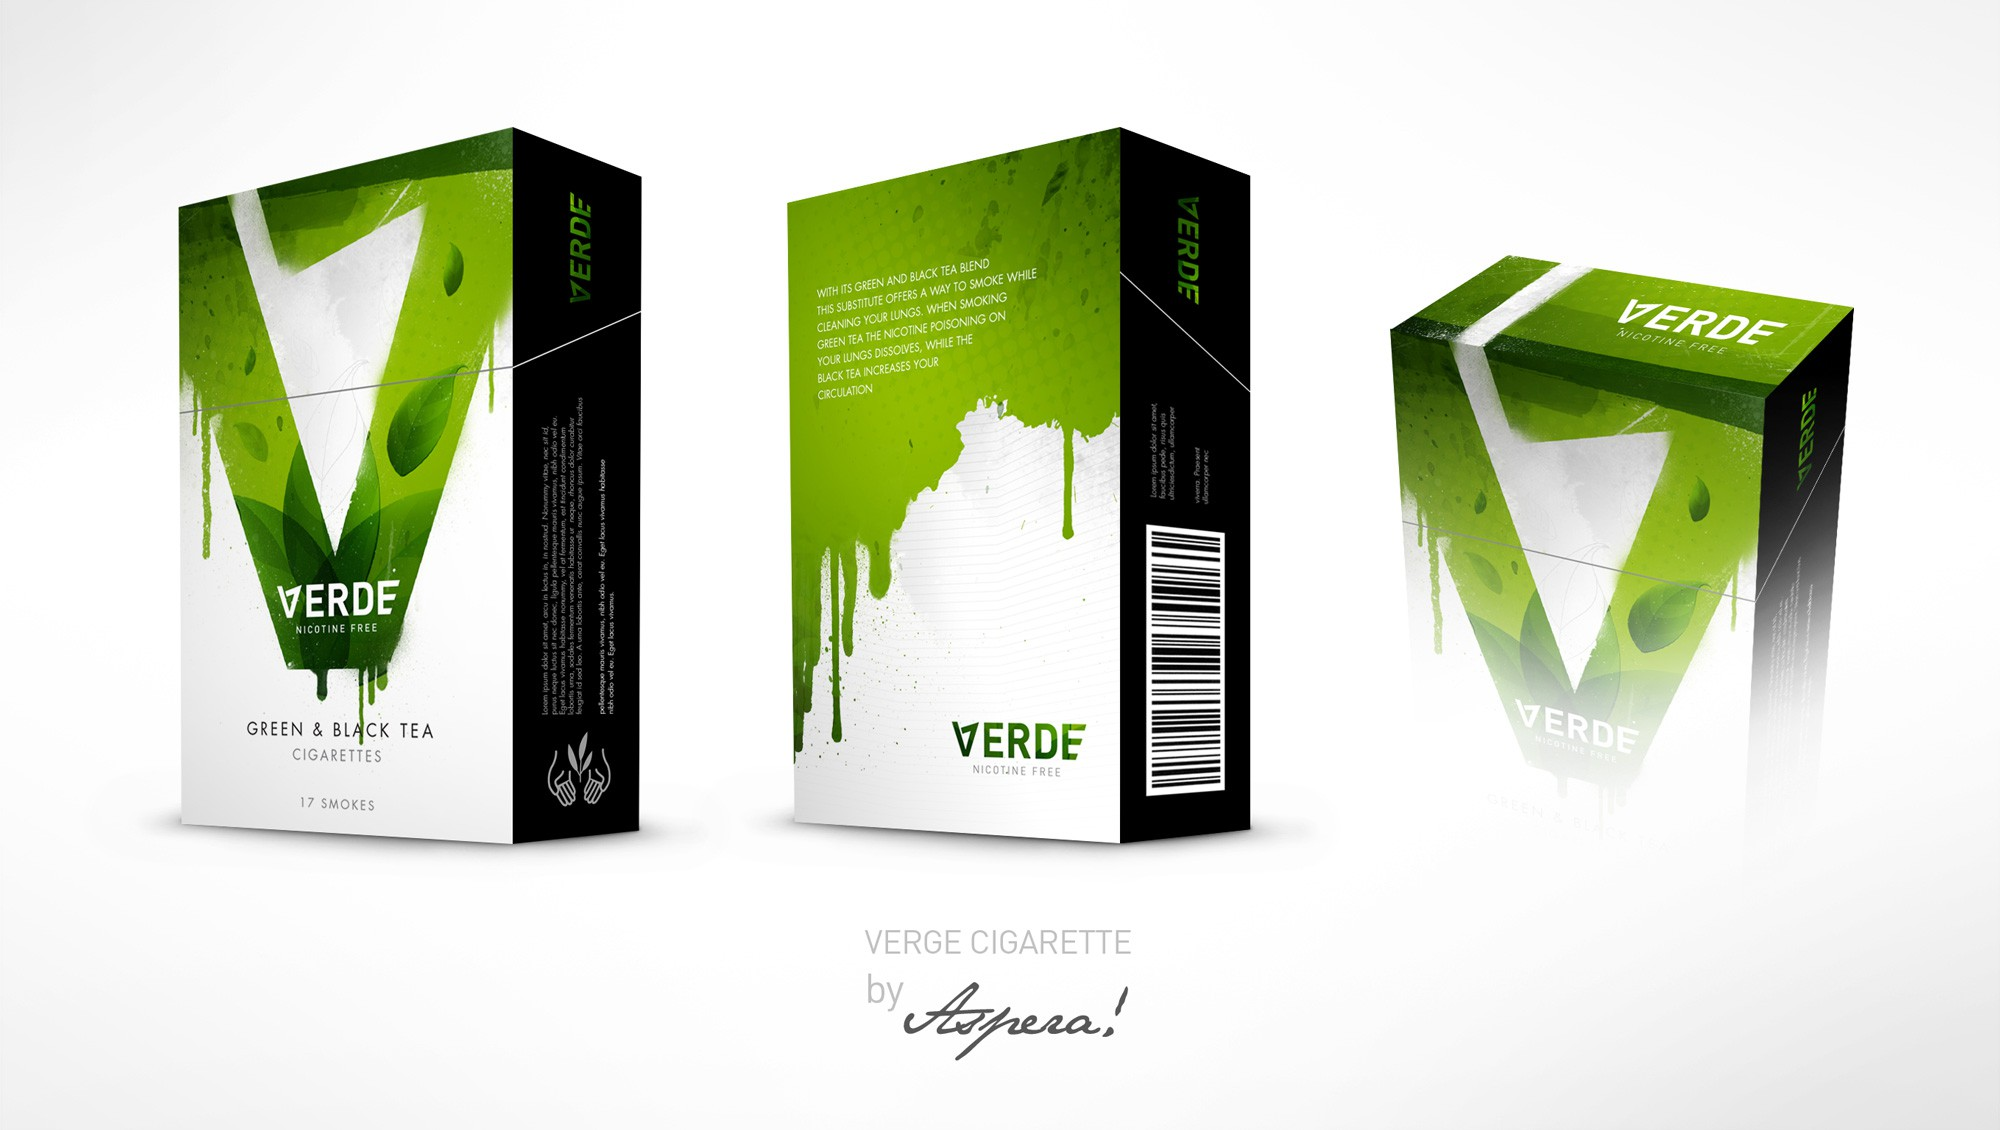 Verde Green Tea Cigarette Box Design